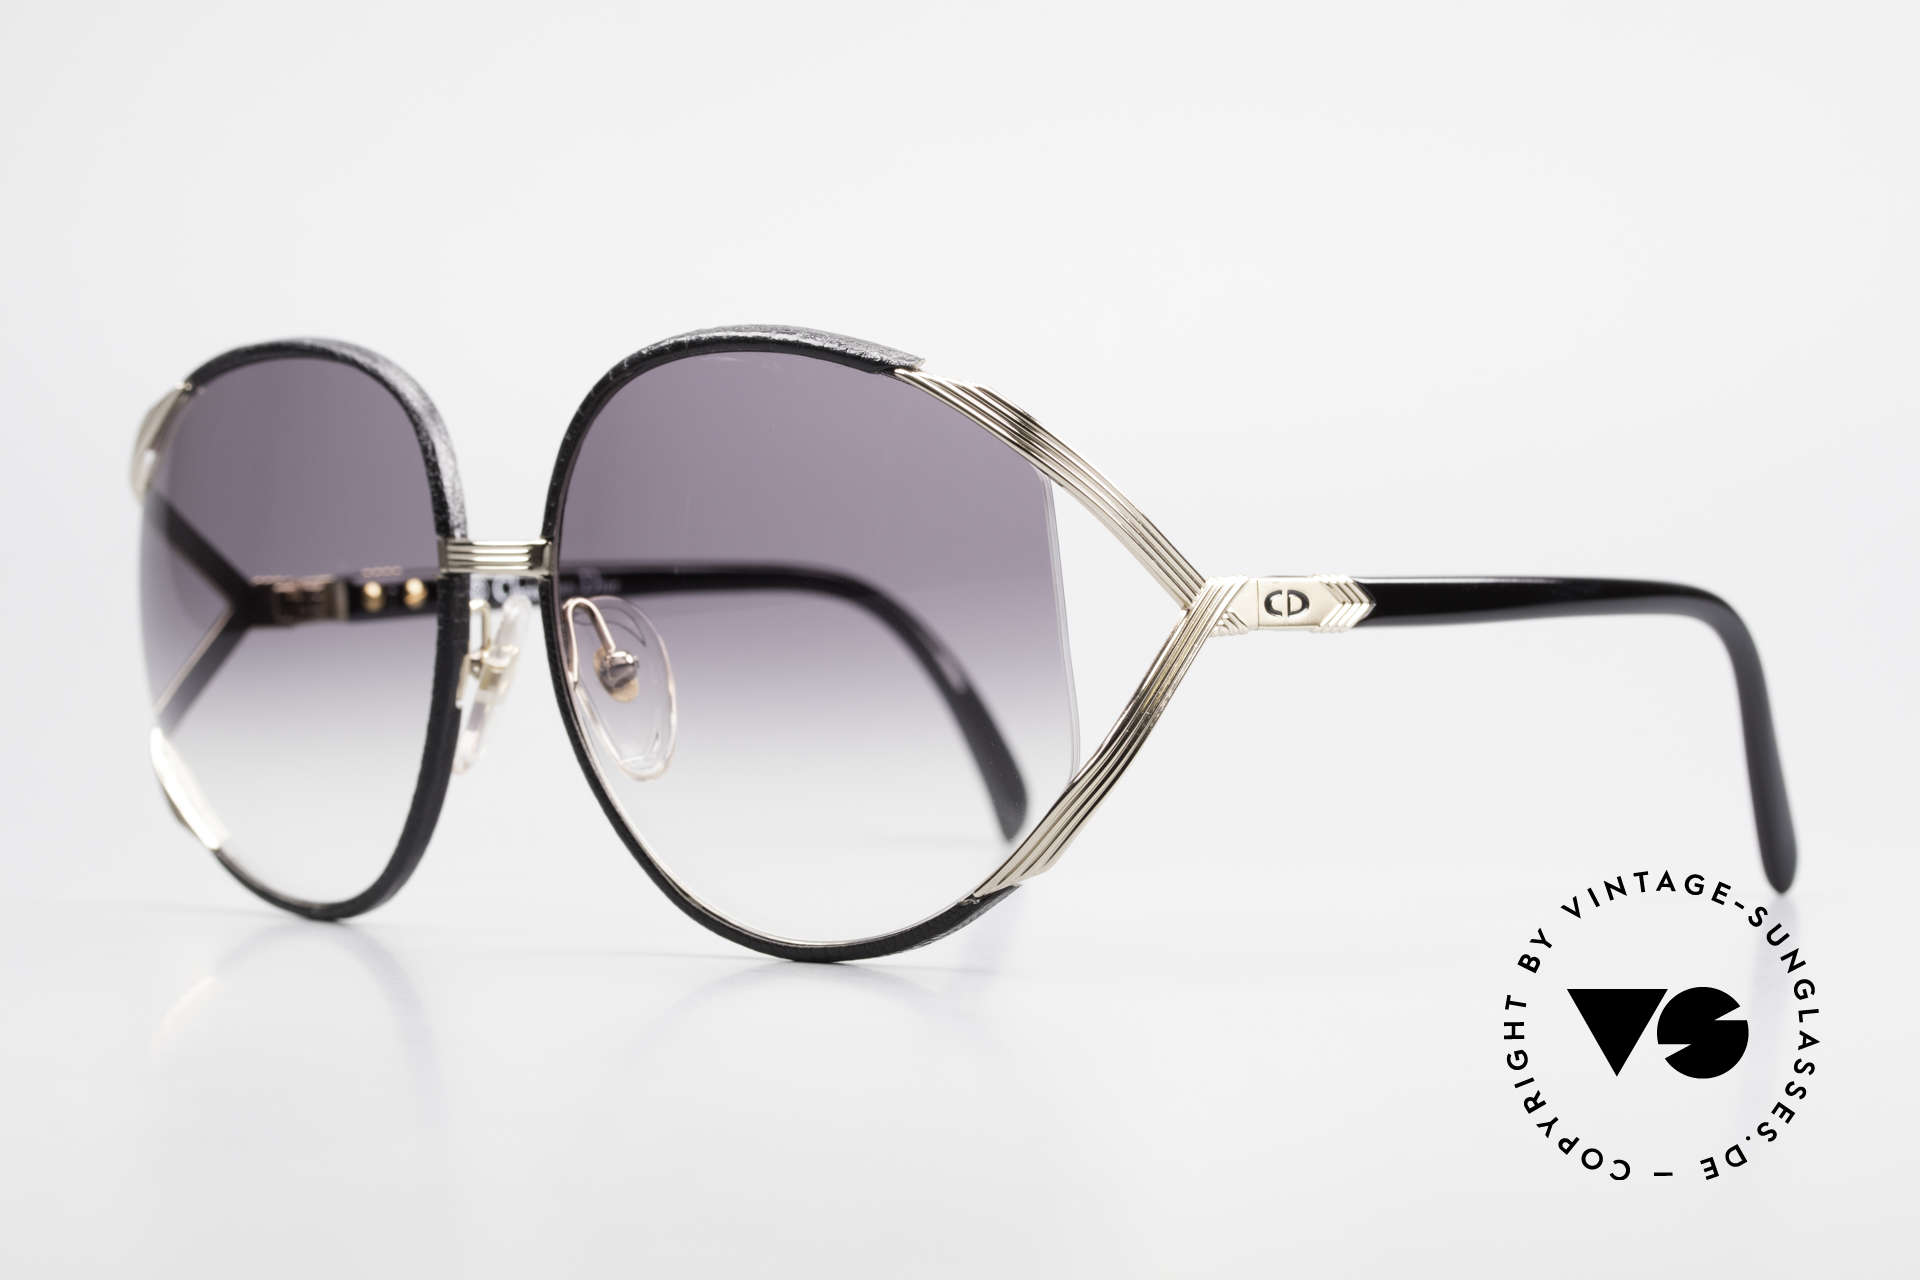 Christian Dior 2250 Rihanna Sunglasses Leather, precious 1980's model and utterly unique leather edition!, Made for Women